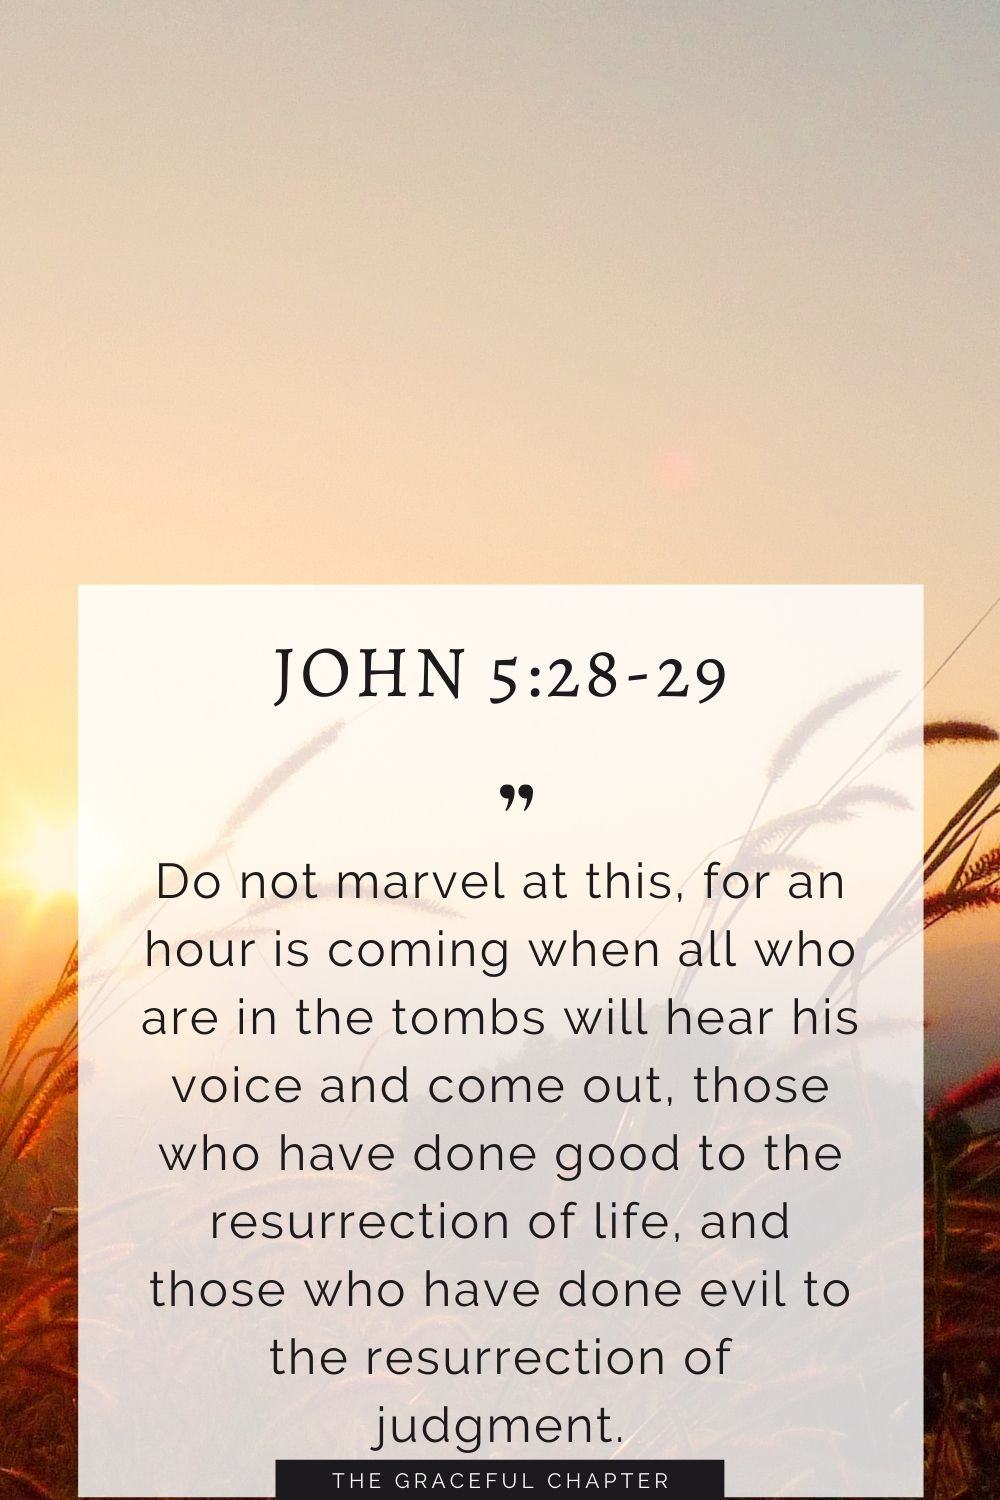 Do not marvel at this, for an hour is coming when all who are in the tombs will hear his voiceand come out, those who have done good to the resurrection of life, and those who have done evil to the resurrection of judgment. John 5:28-29